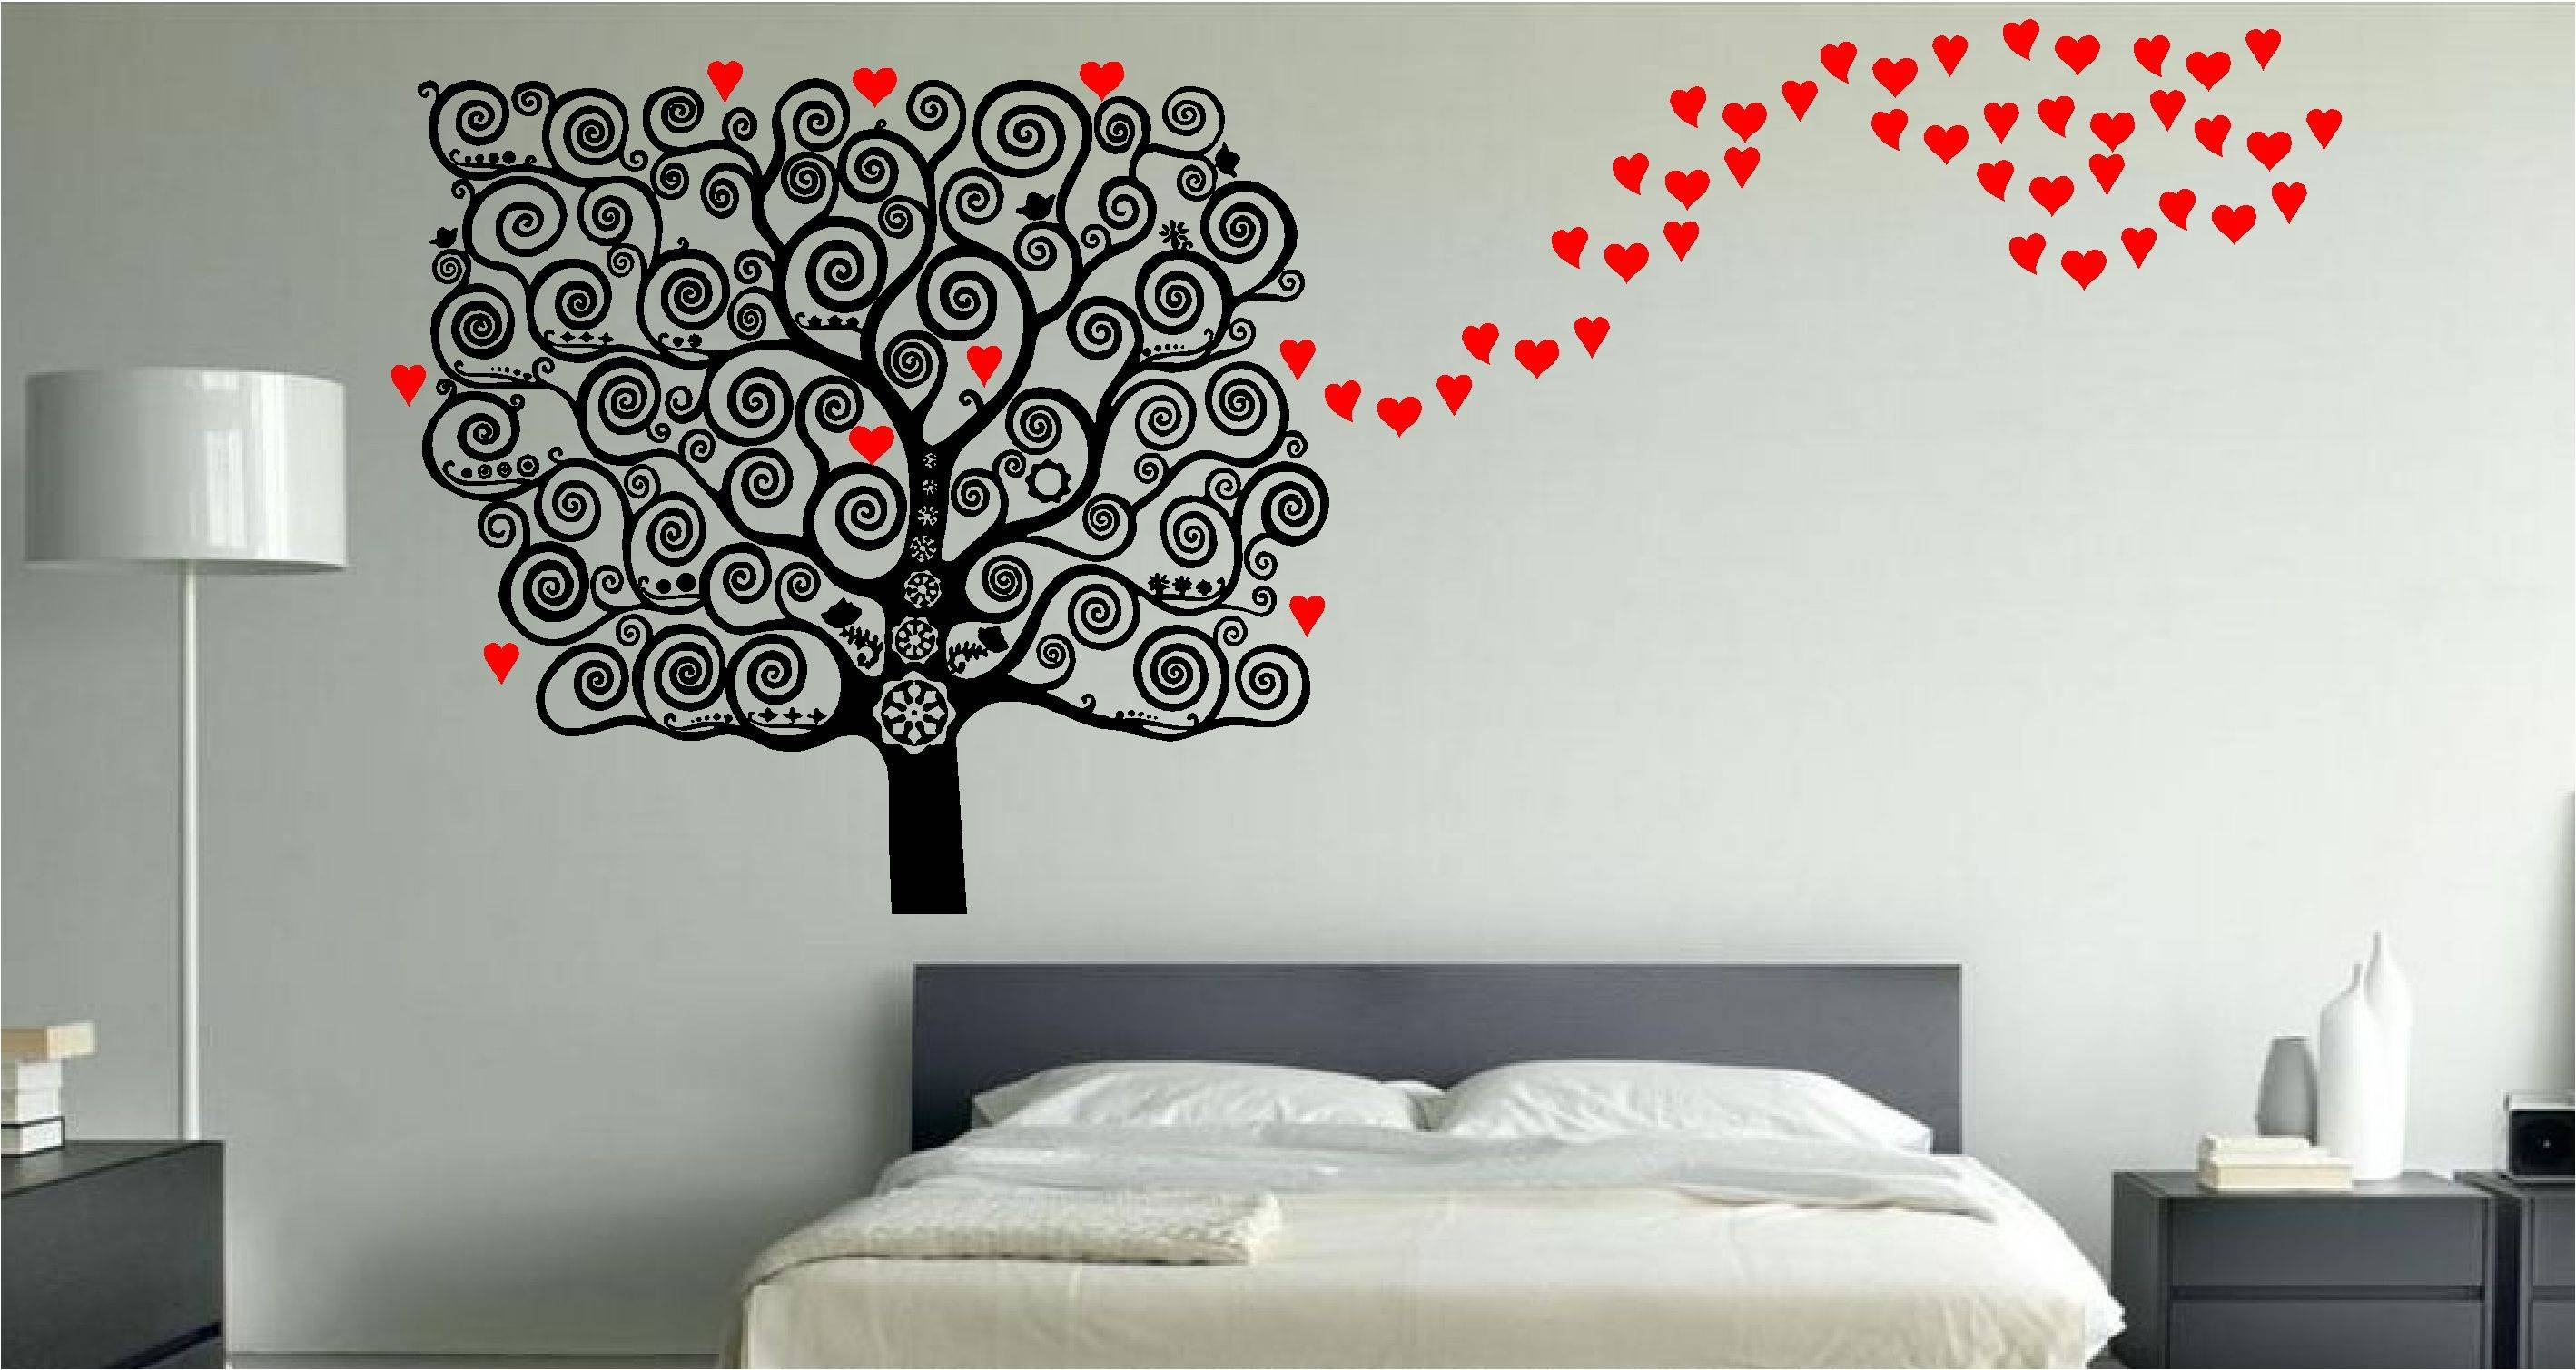 Bedroom : Abstract Wall Art Metal Wall Art Decor Wall Art Decals With Regard To Most Up To Date Wall Art Deco Decals (View 3 of 20)